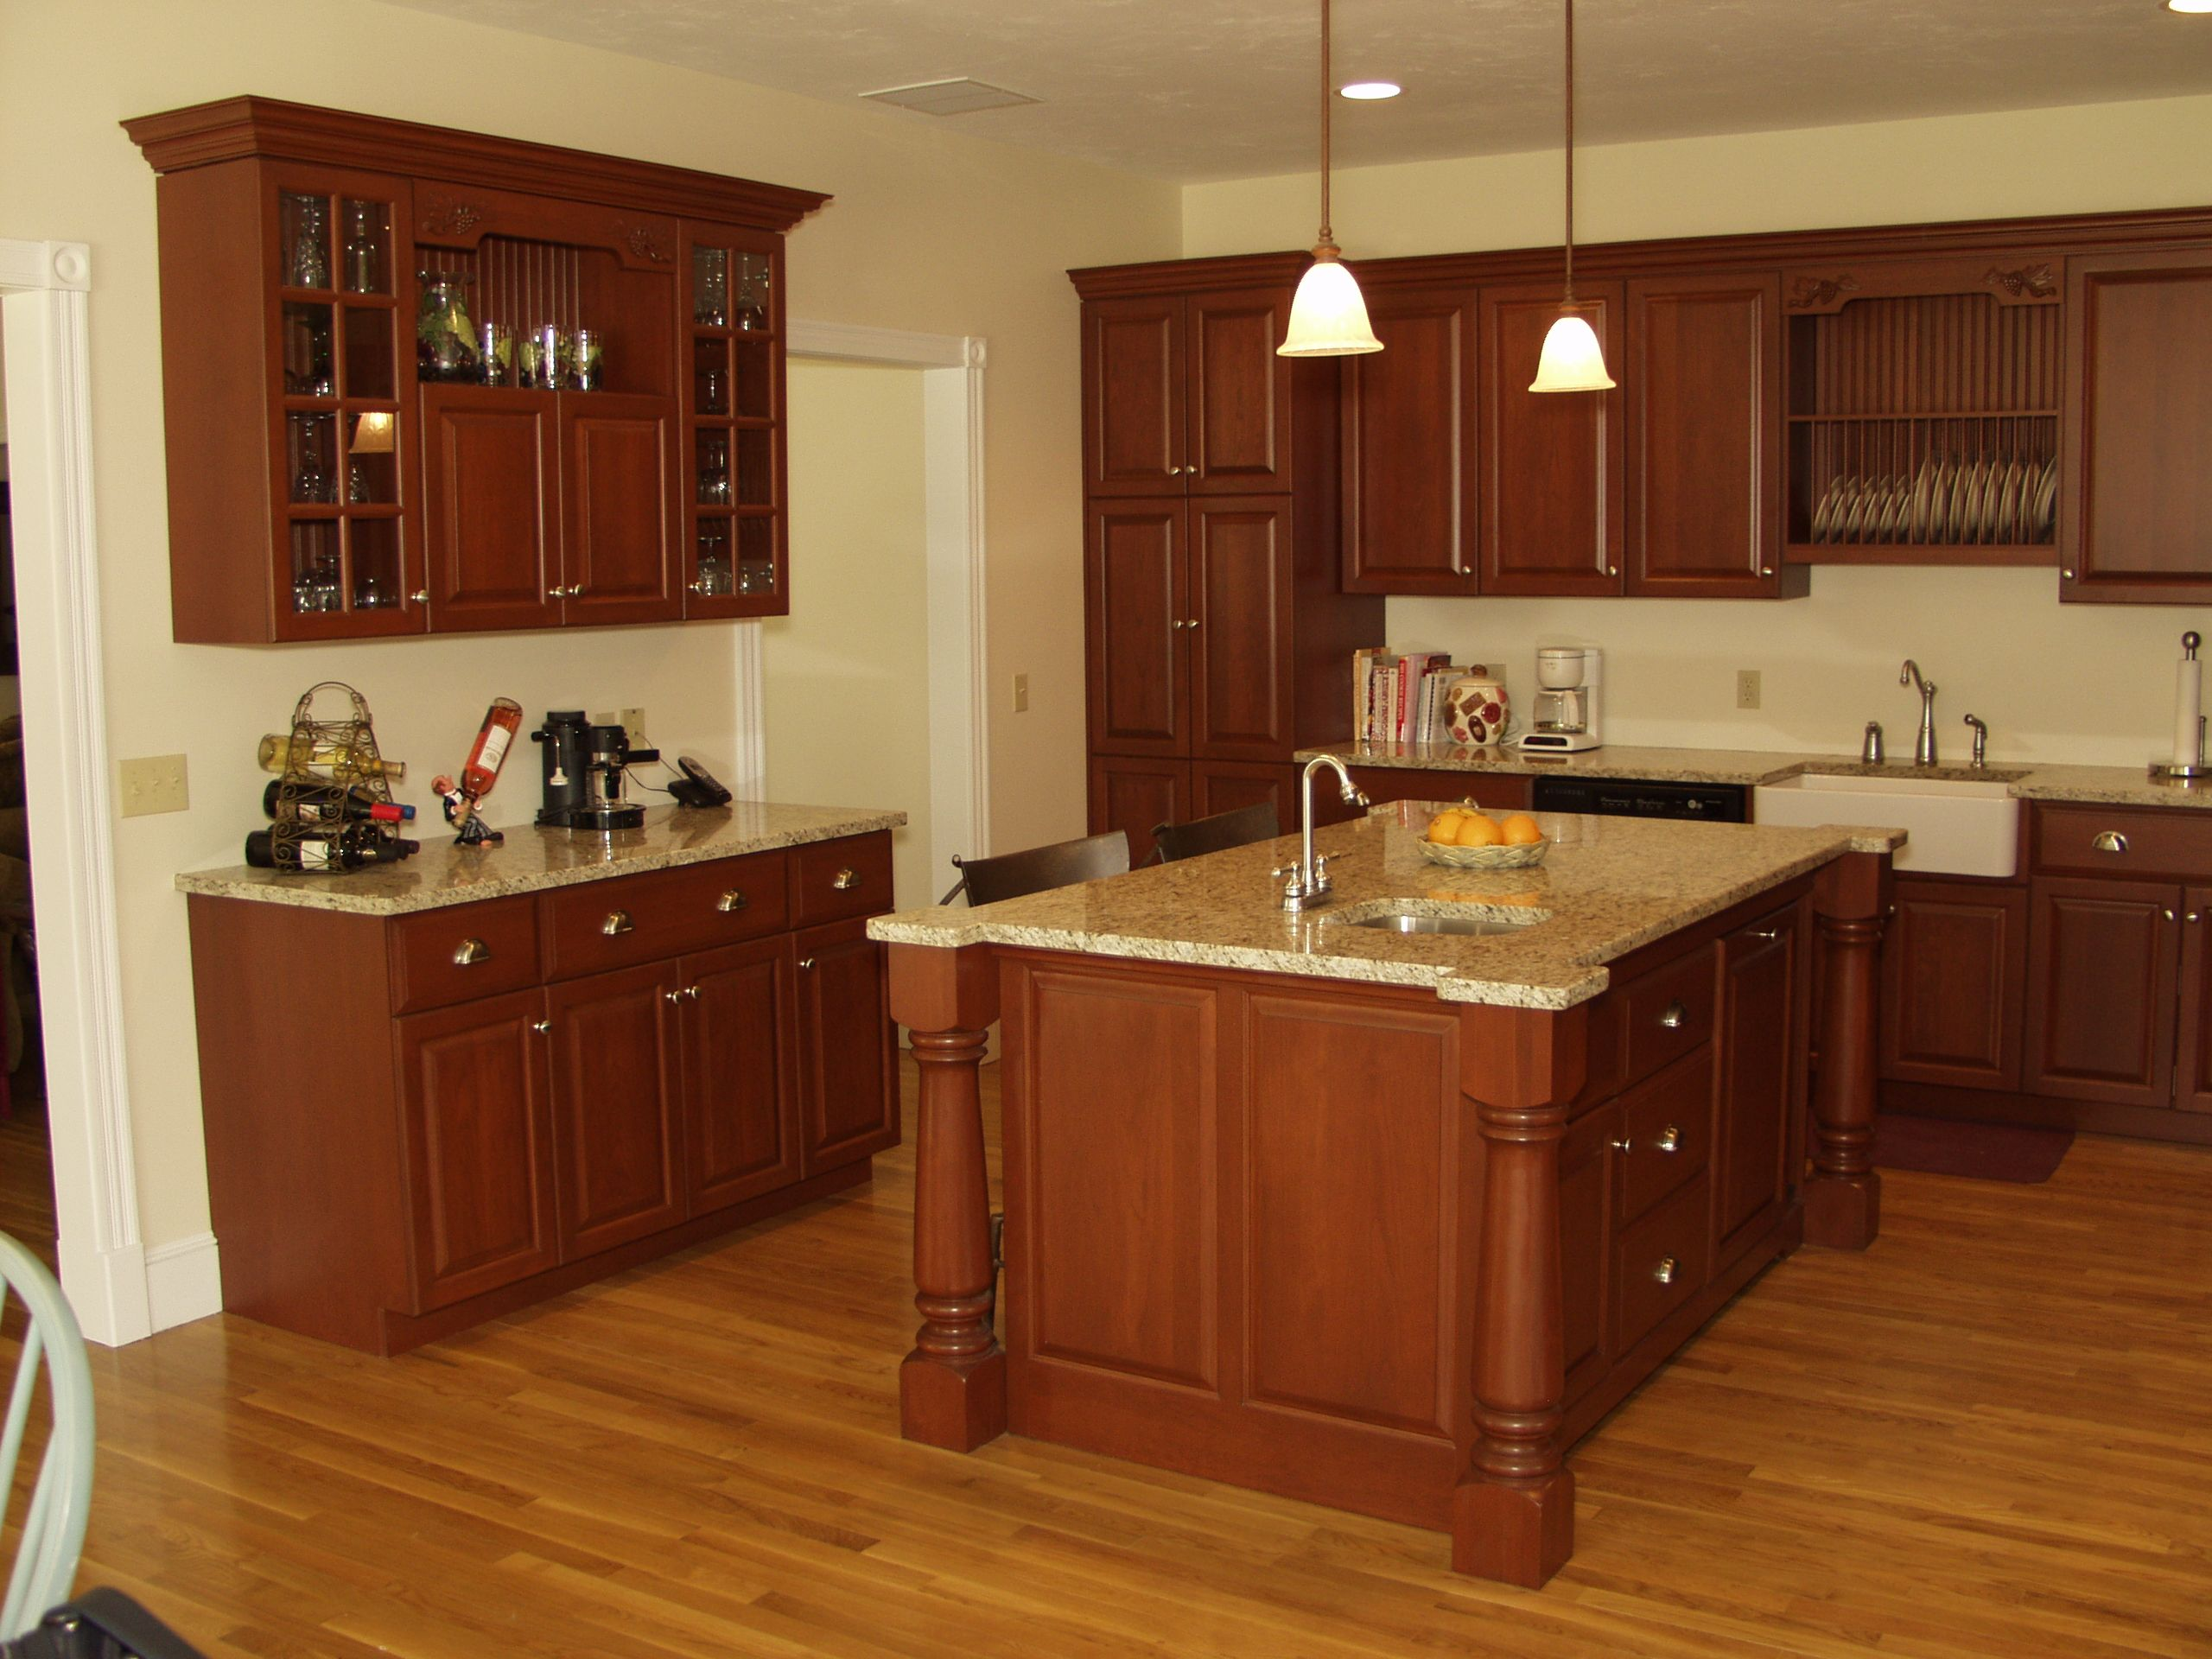 Kitchen With Cherry Cabinets Kitchens With Cherry Cabinets Cost Of Kitchen Countertops Kitchen Cabinets Countertops Best Kitchen Countertops